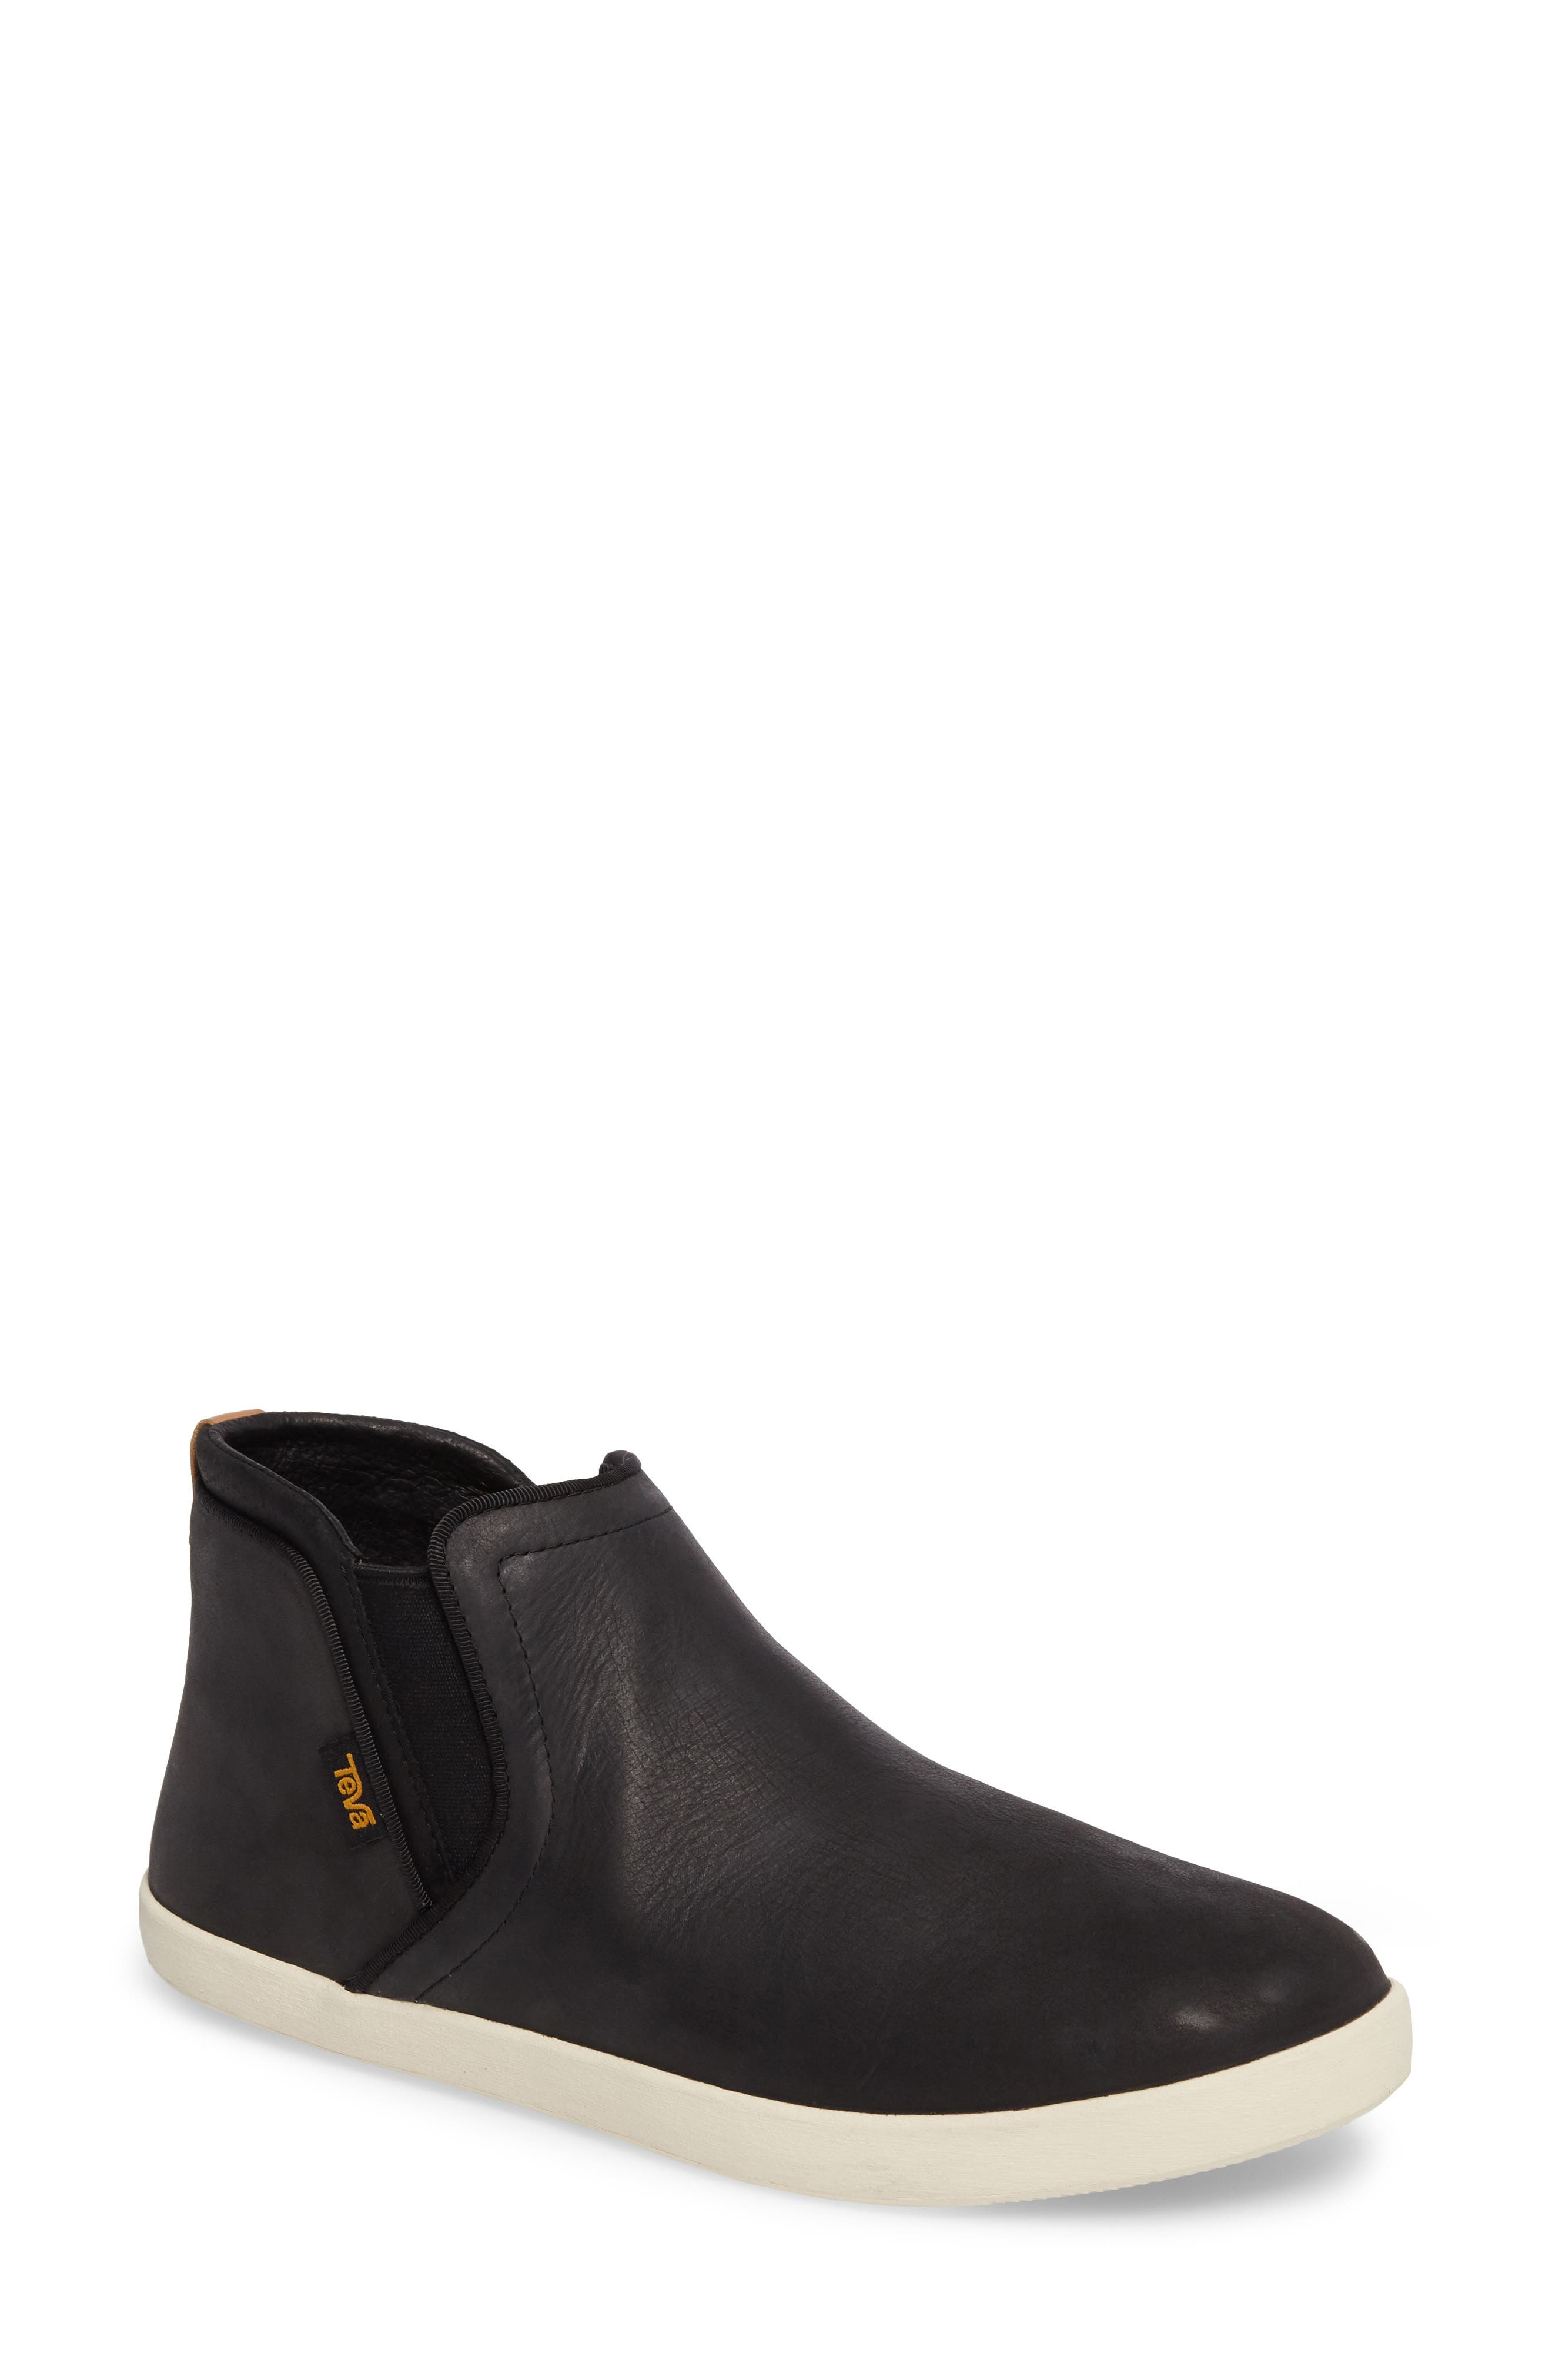 Willow Chelsea Sneaker,                             Main thumbnail 1, color,                             Black Leather